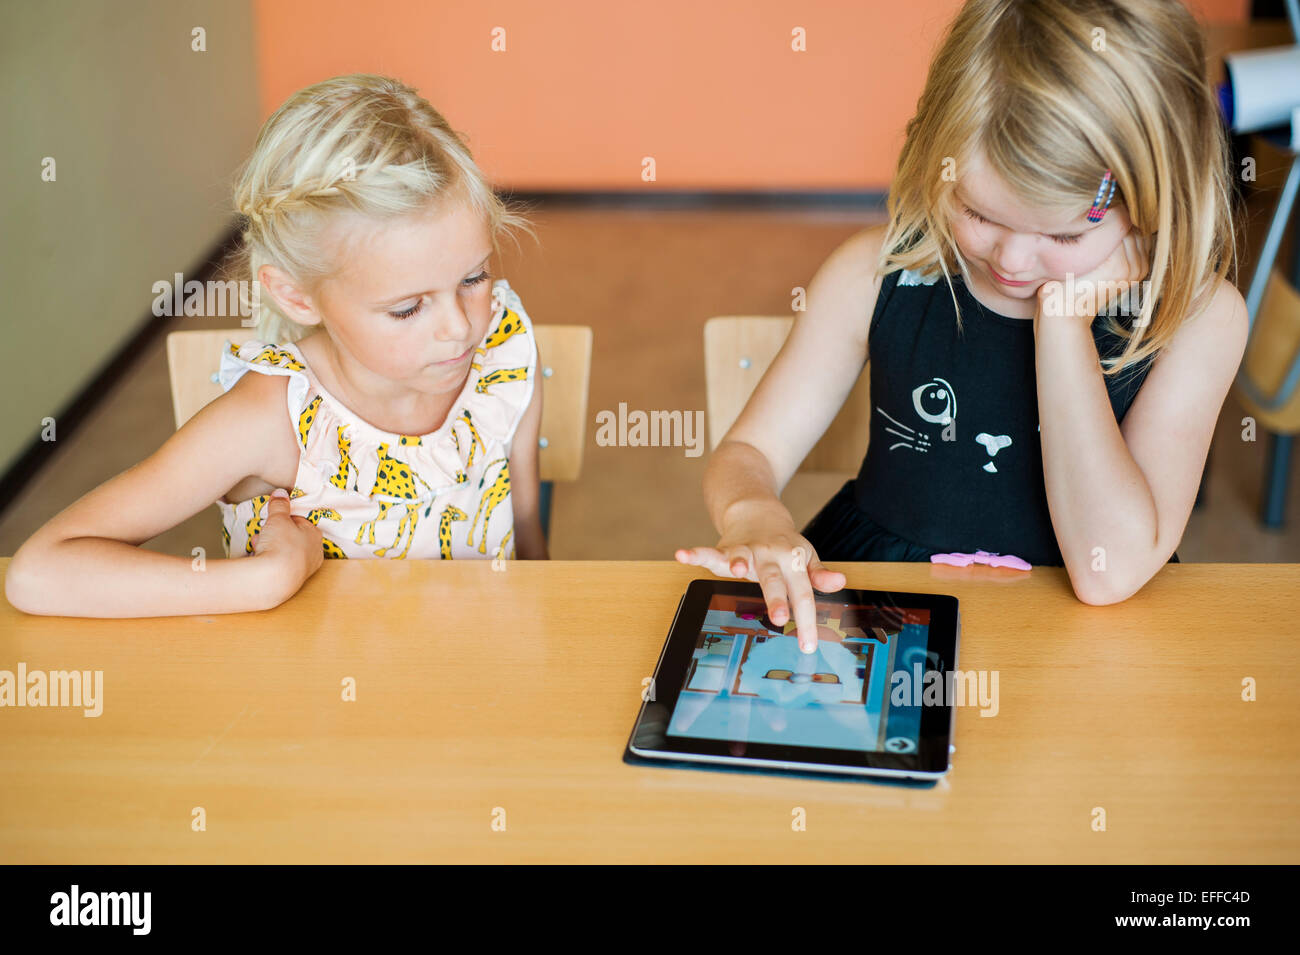 Girl watching classmate drawing on digital tablet in classroom - Stock Image